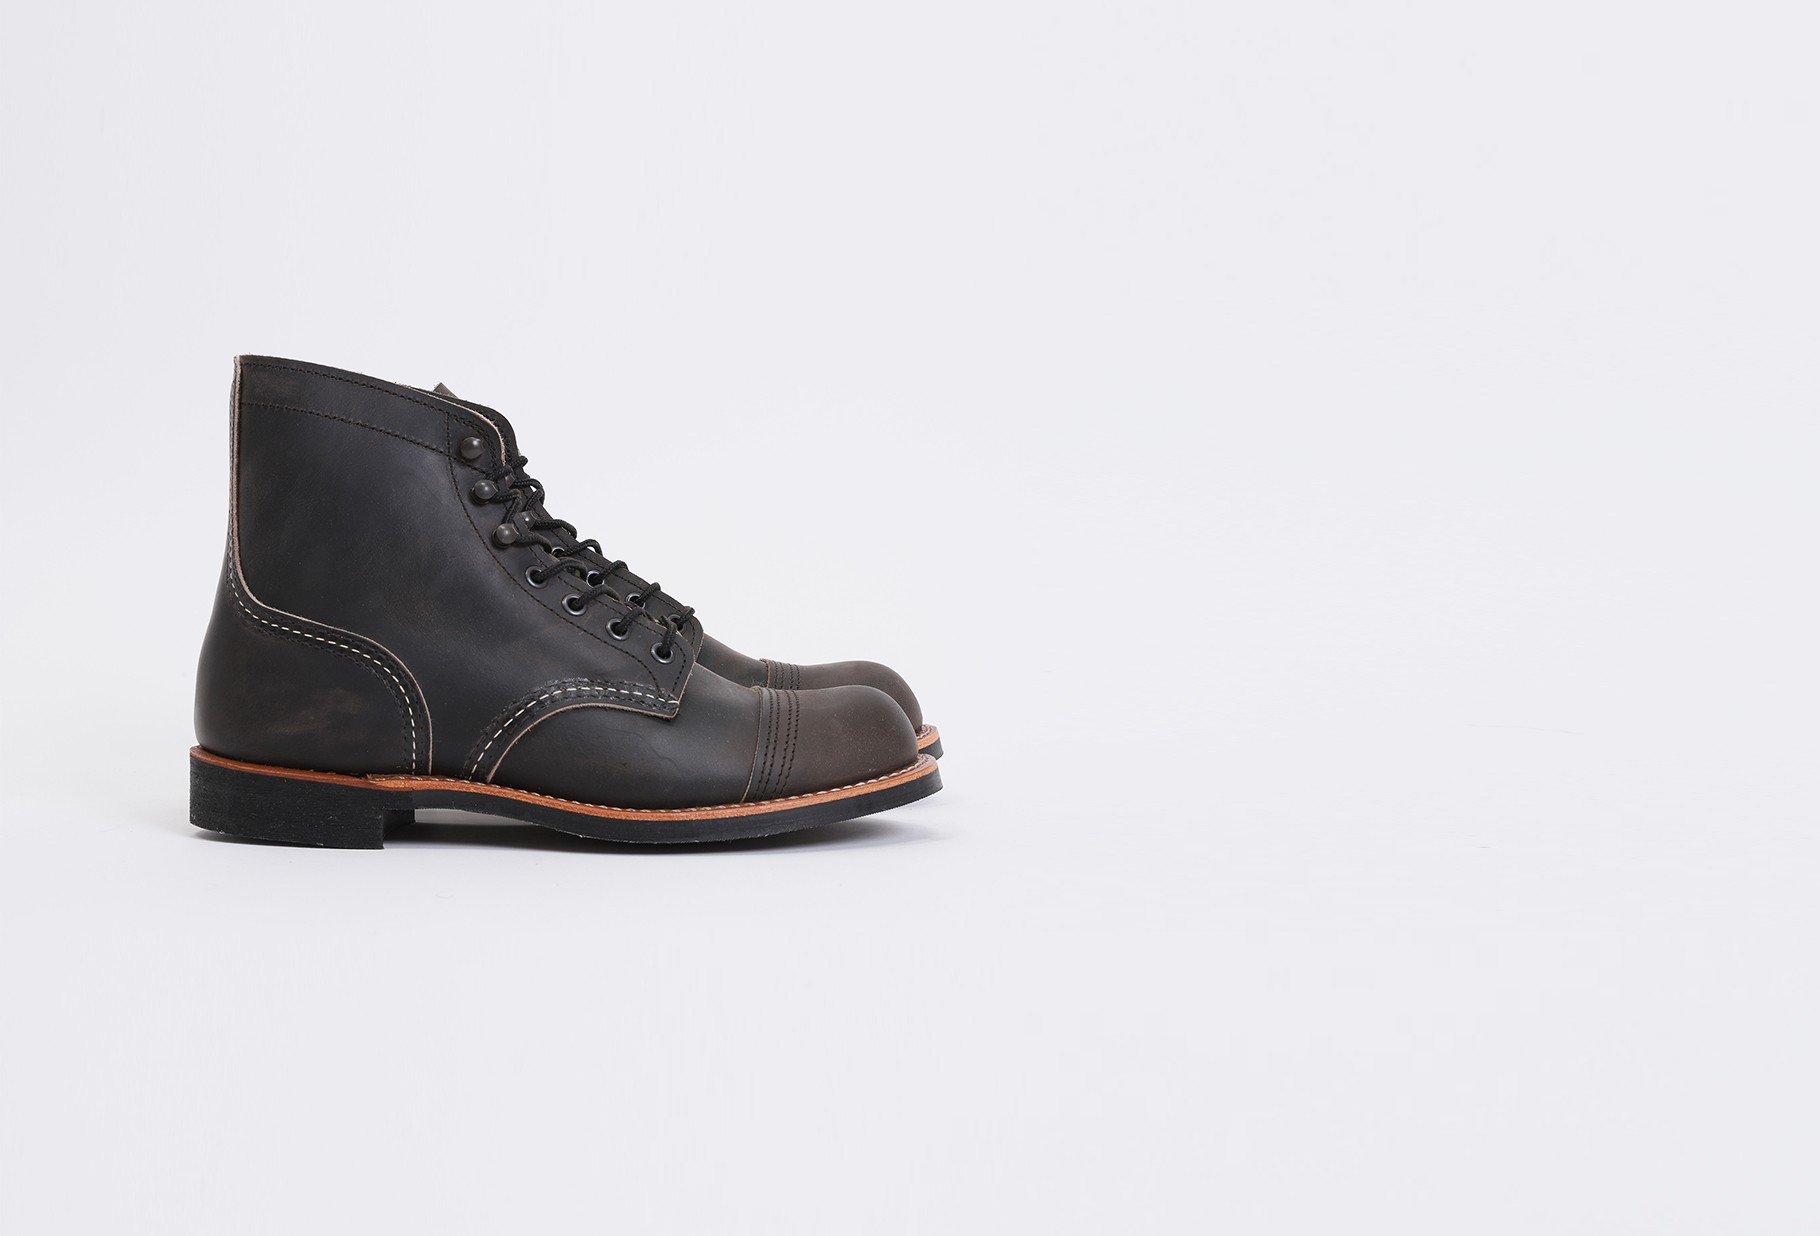 RED WING / Iron ranger style no.8086 Charcoal